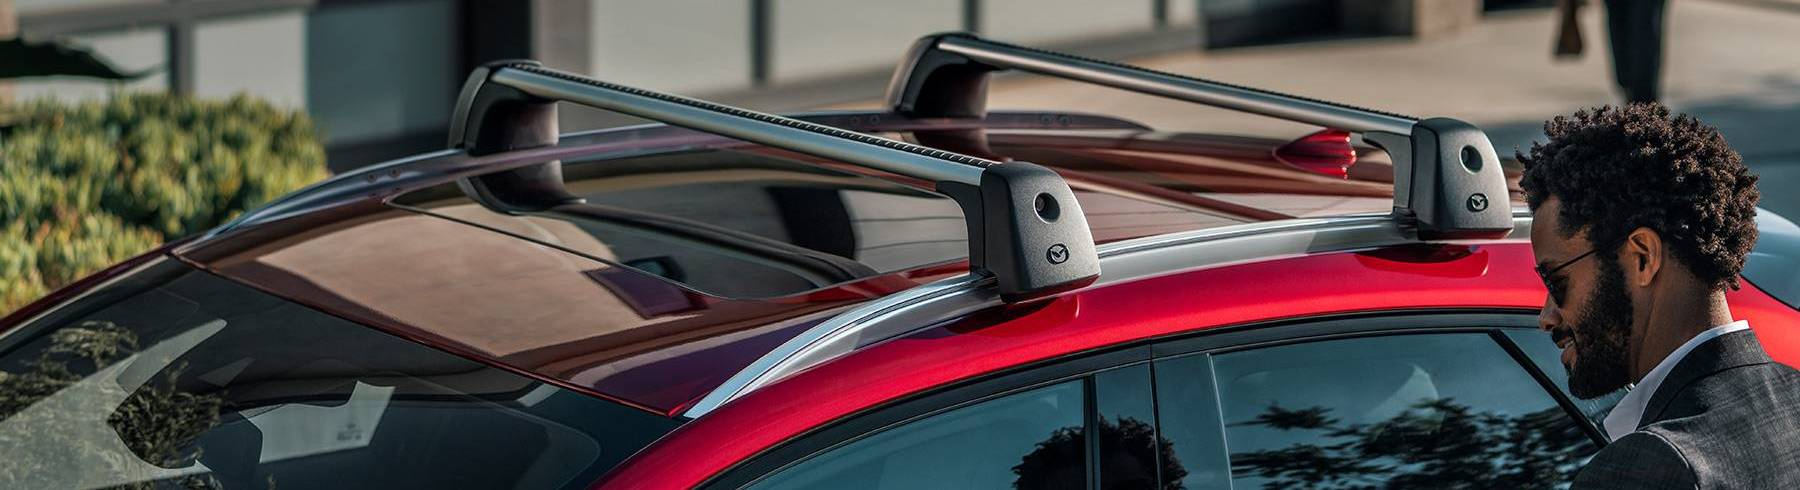 Roof Rails on the 2020 MAZDA CX-30